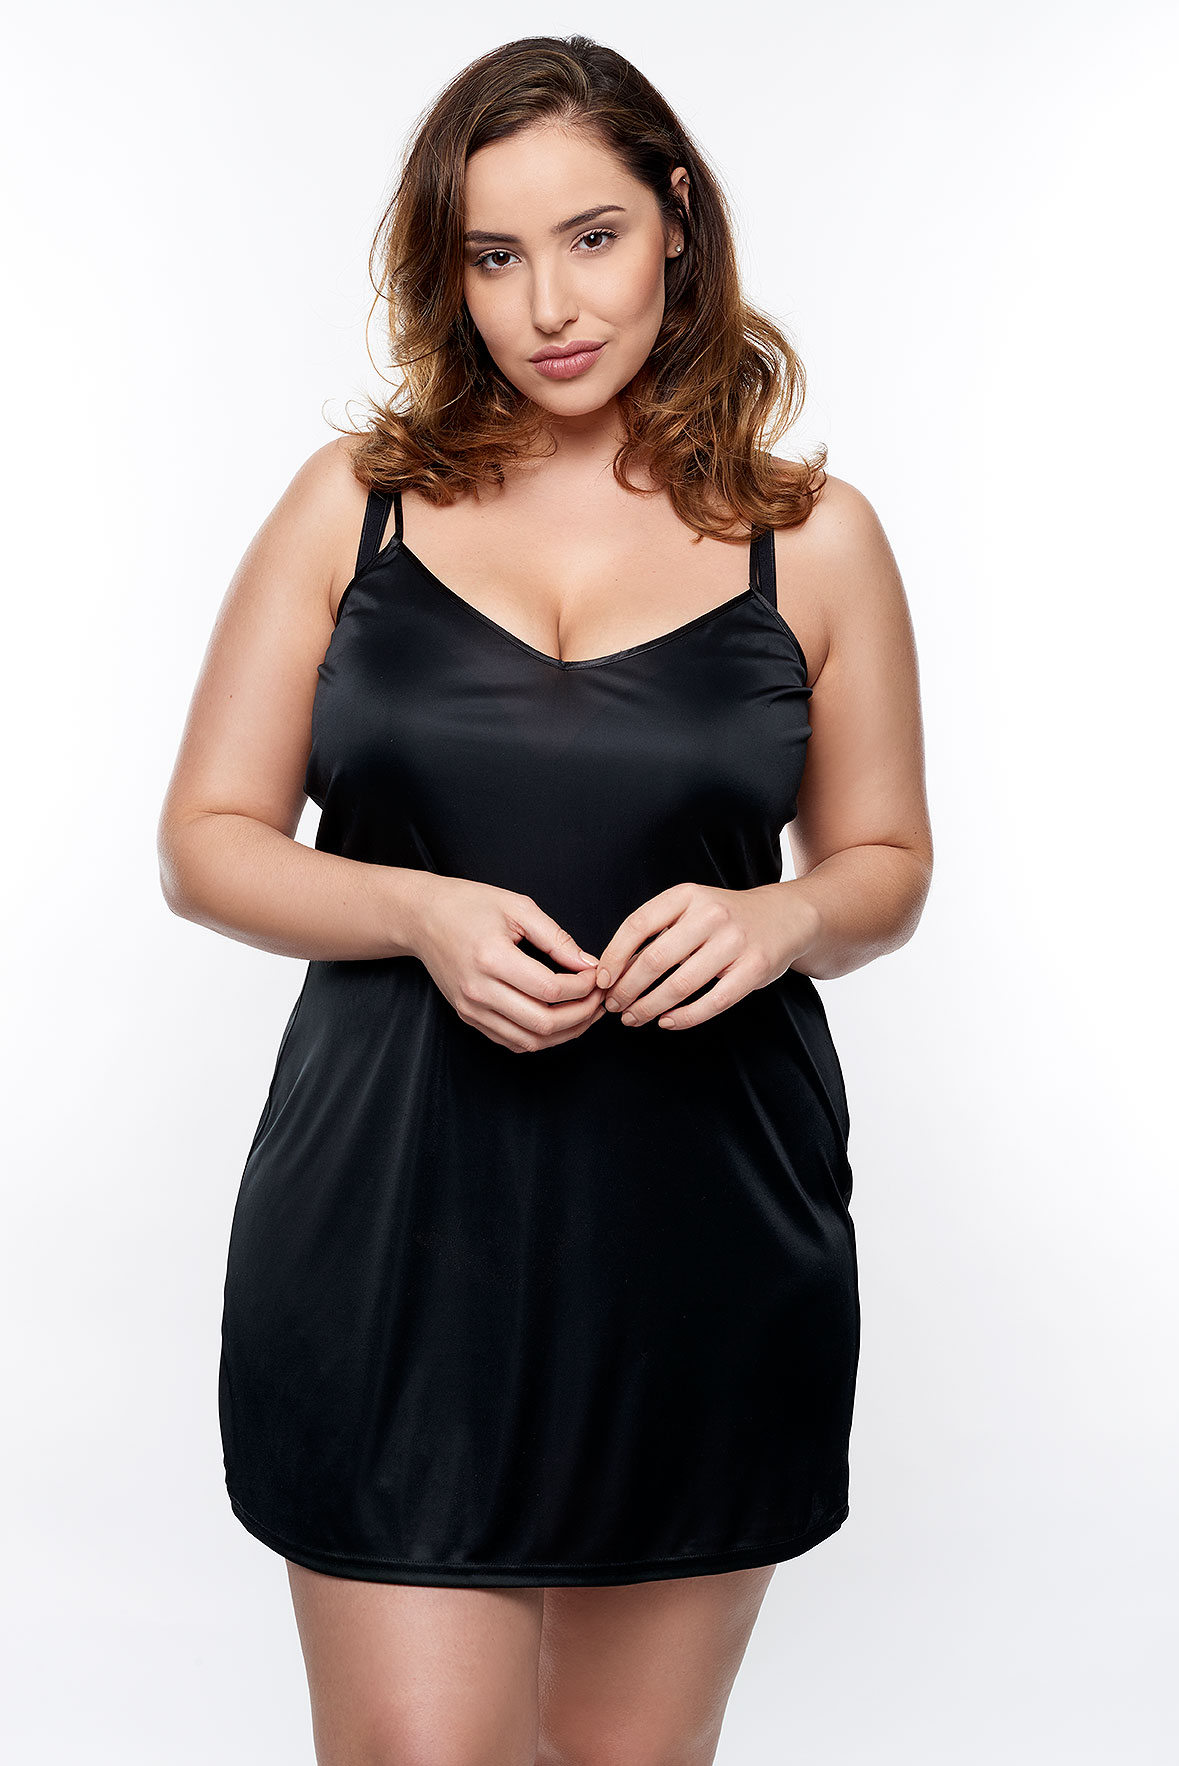 Jada-models-one-1-la-vie-en-lingerie-lingerie-la-femme-plus-size-model-black-slip-dress-05